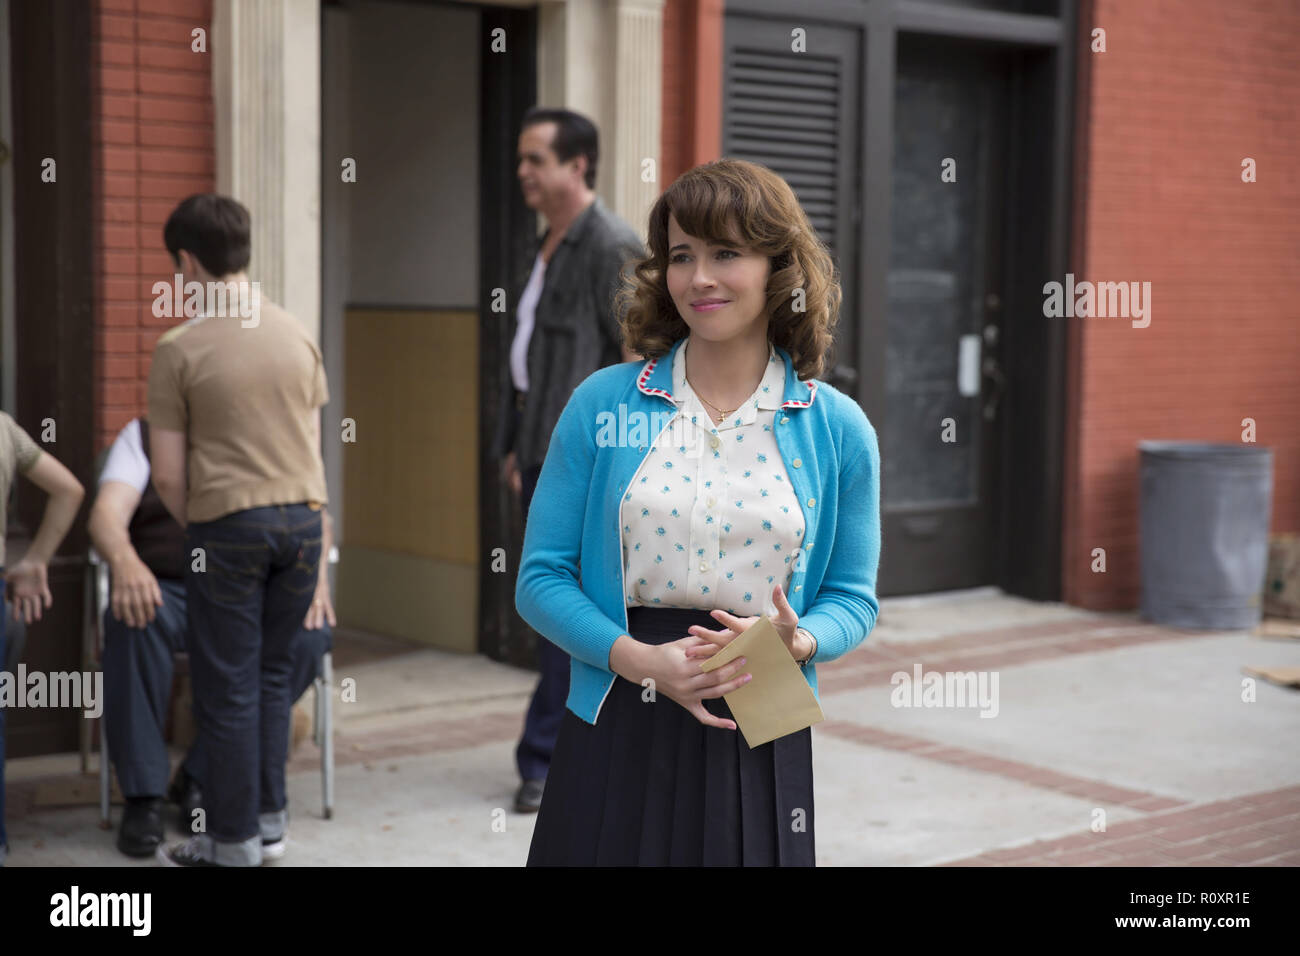 Linda Cardellini as Dolores Vallelonga in 'Green Book,' directed by Peter Farrelly. (2018) (Credit Photo: Universal Studios / The Hollywood Archive) - Stock Image